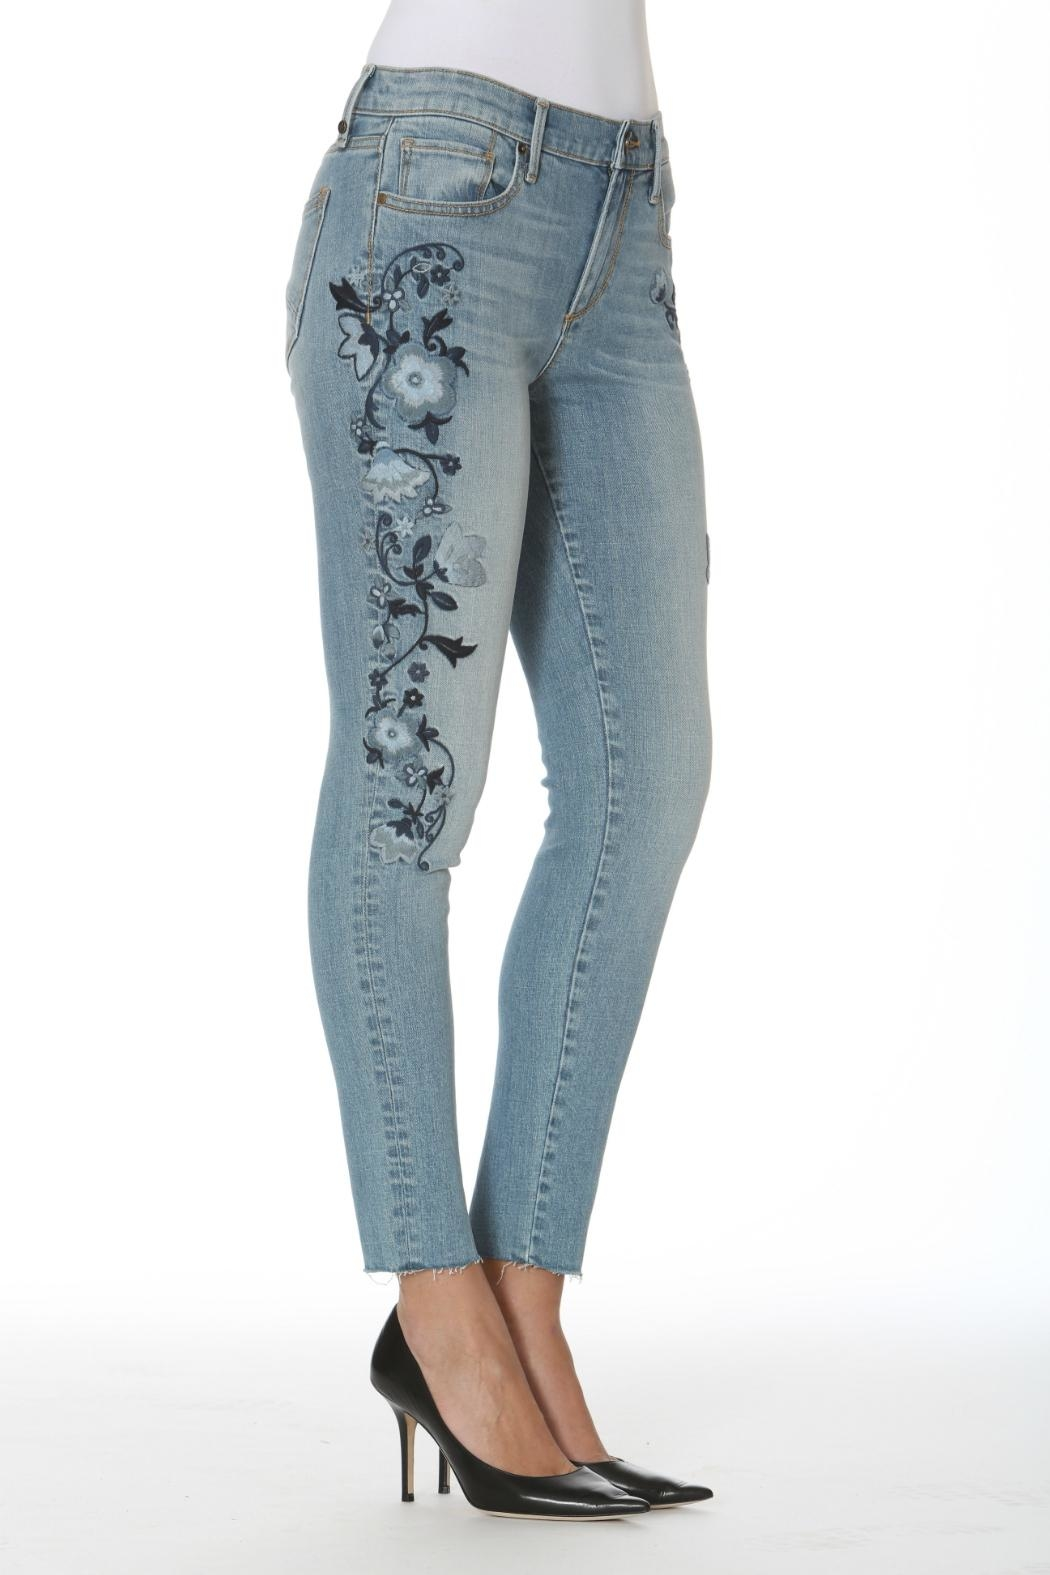 Driftwood Crop Embriodered Jean From New Jersey By